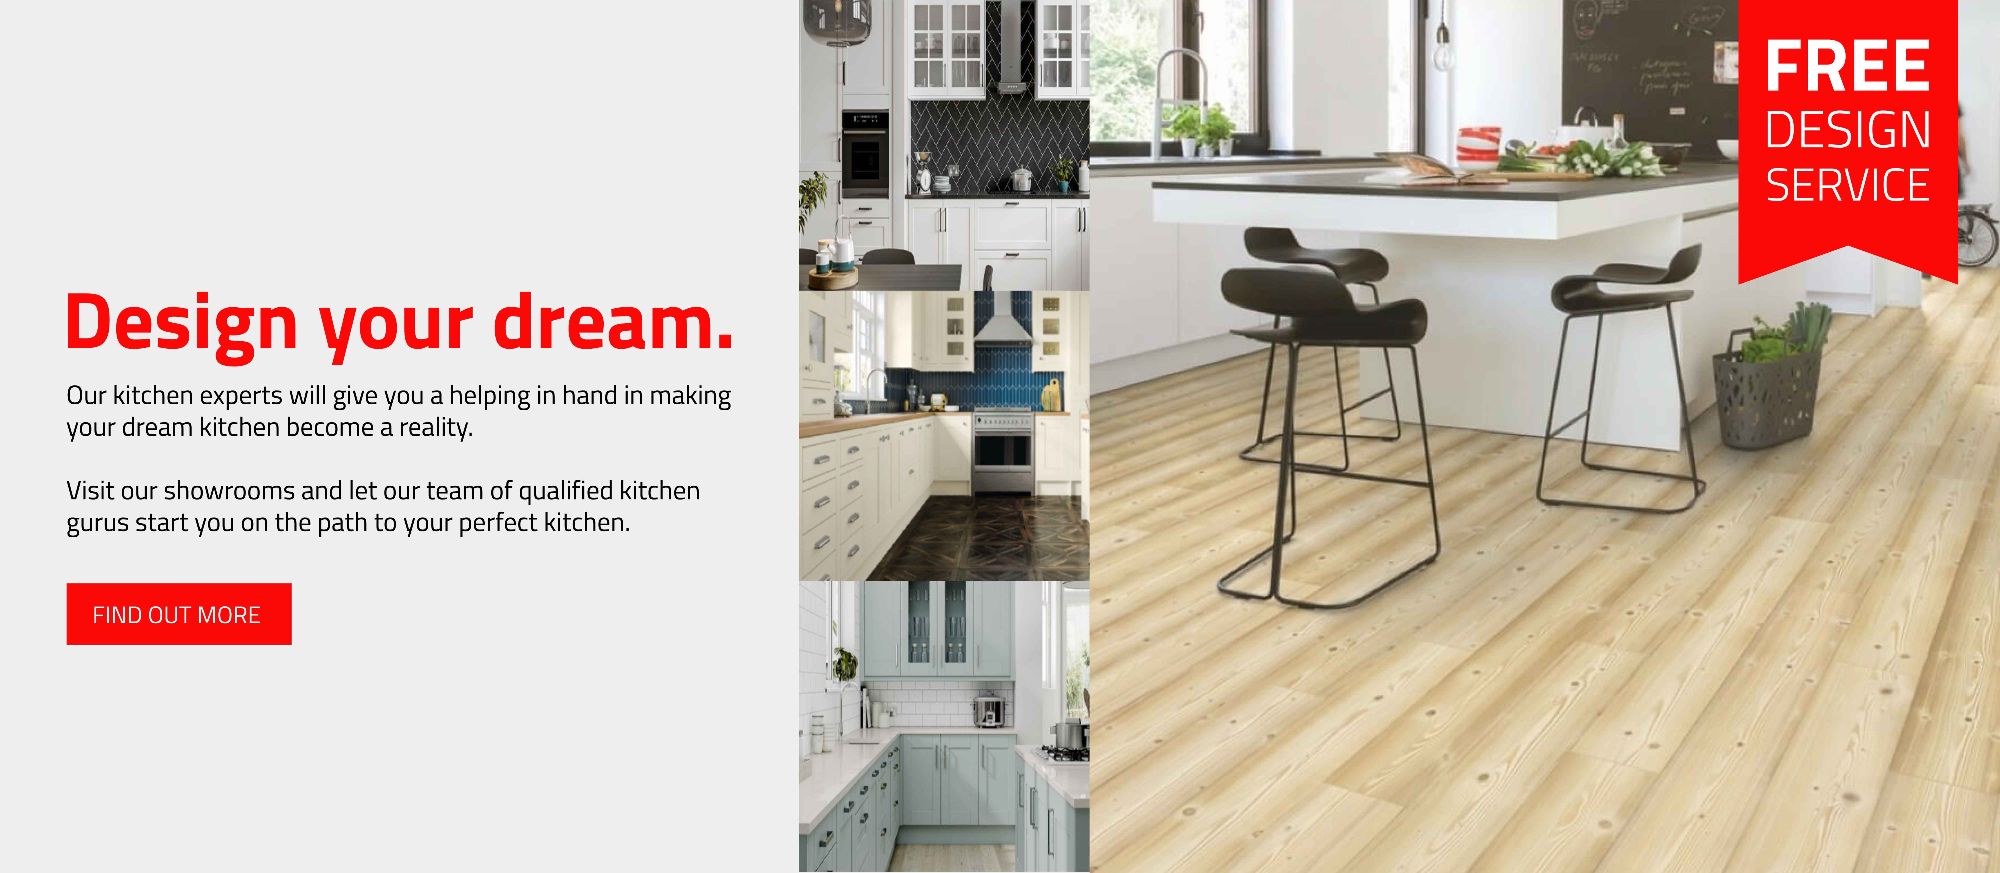 Design your dream kitchen - click to find out more